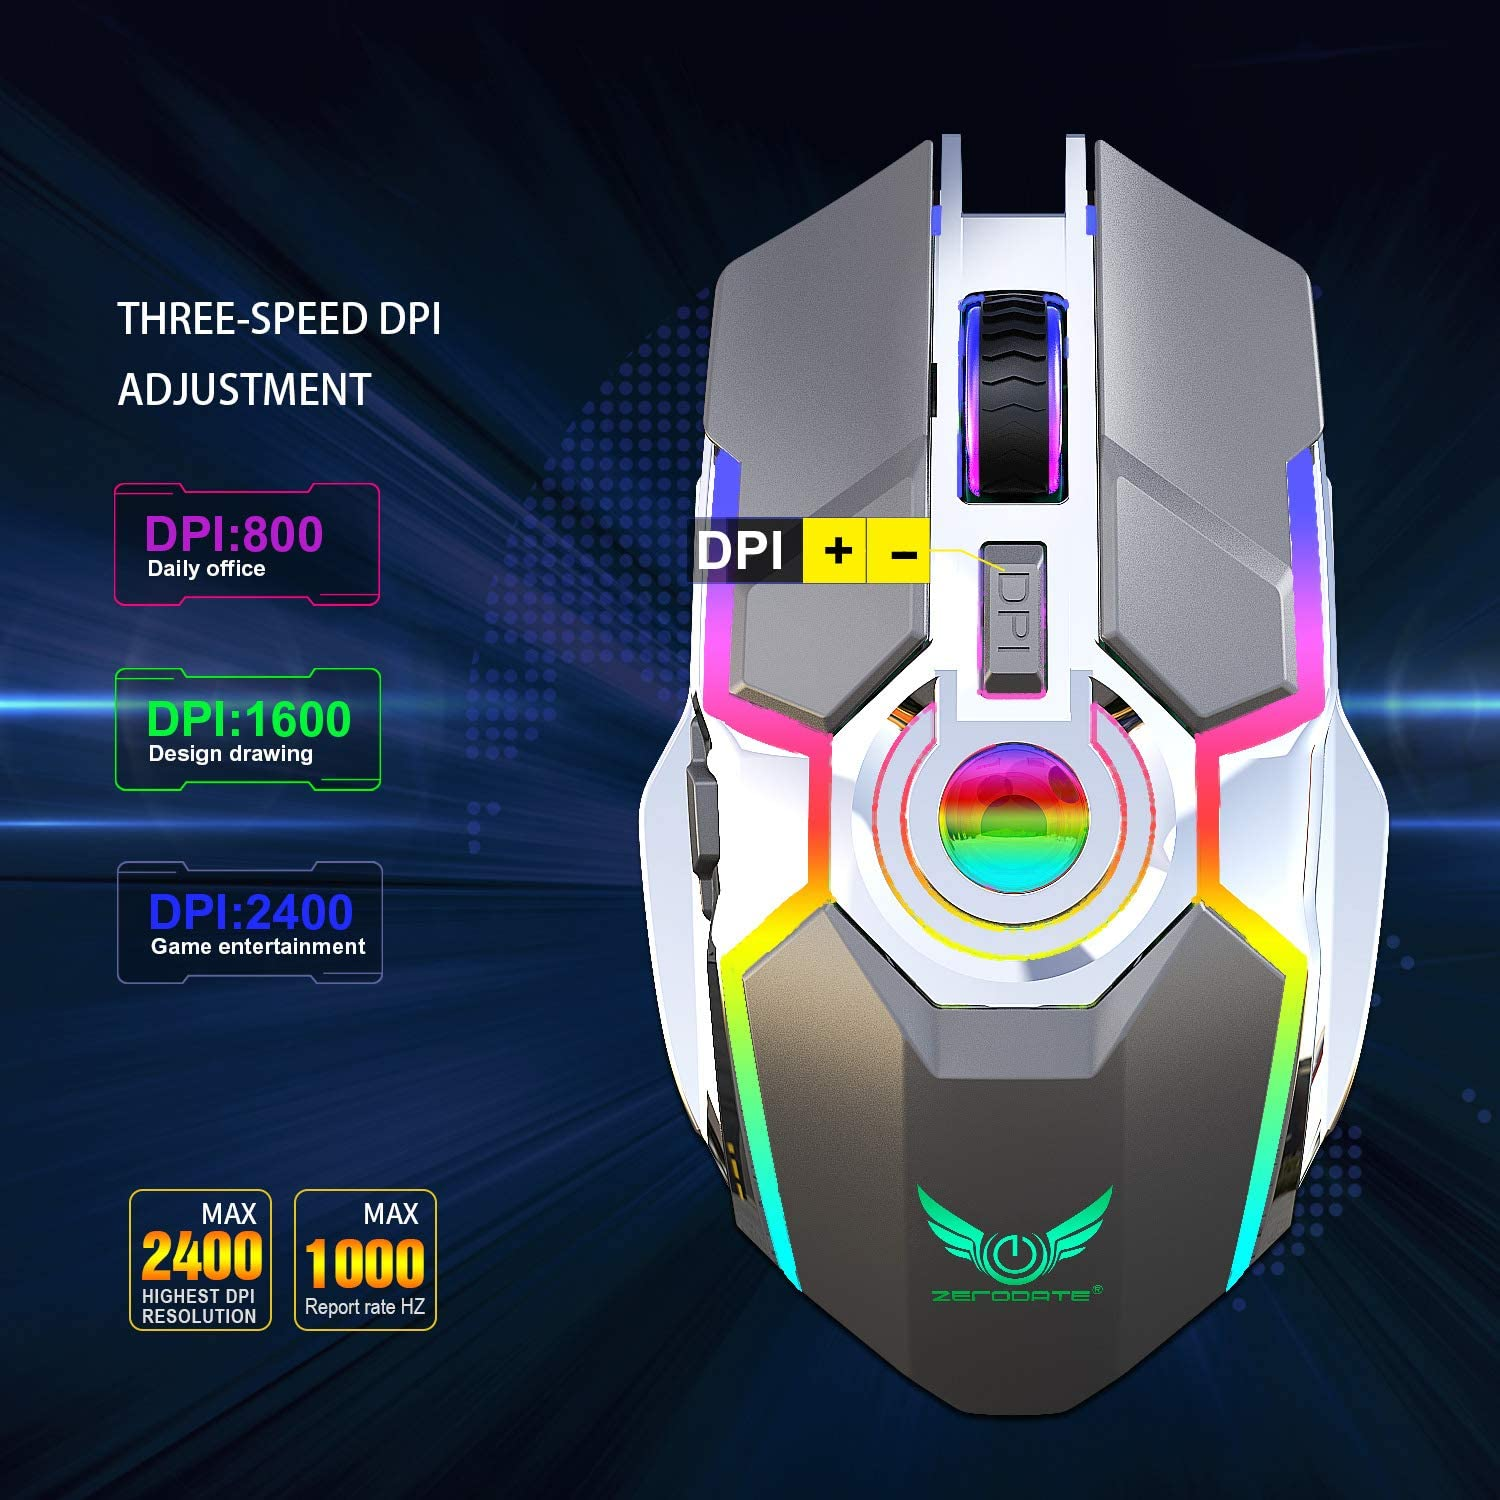 Best Choice Rechargeable Wireless Mouse Silent Ergonomic Gaming Mouse RGB Backlight for Laptop Computer ZERODATE-T30B Black RGB